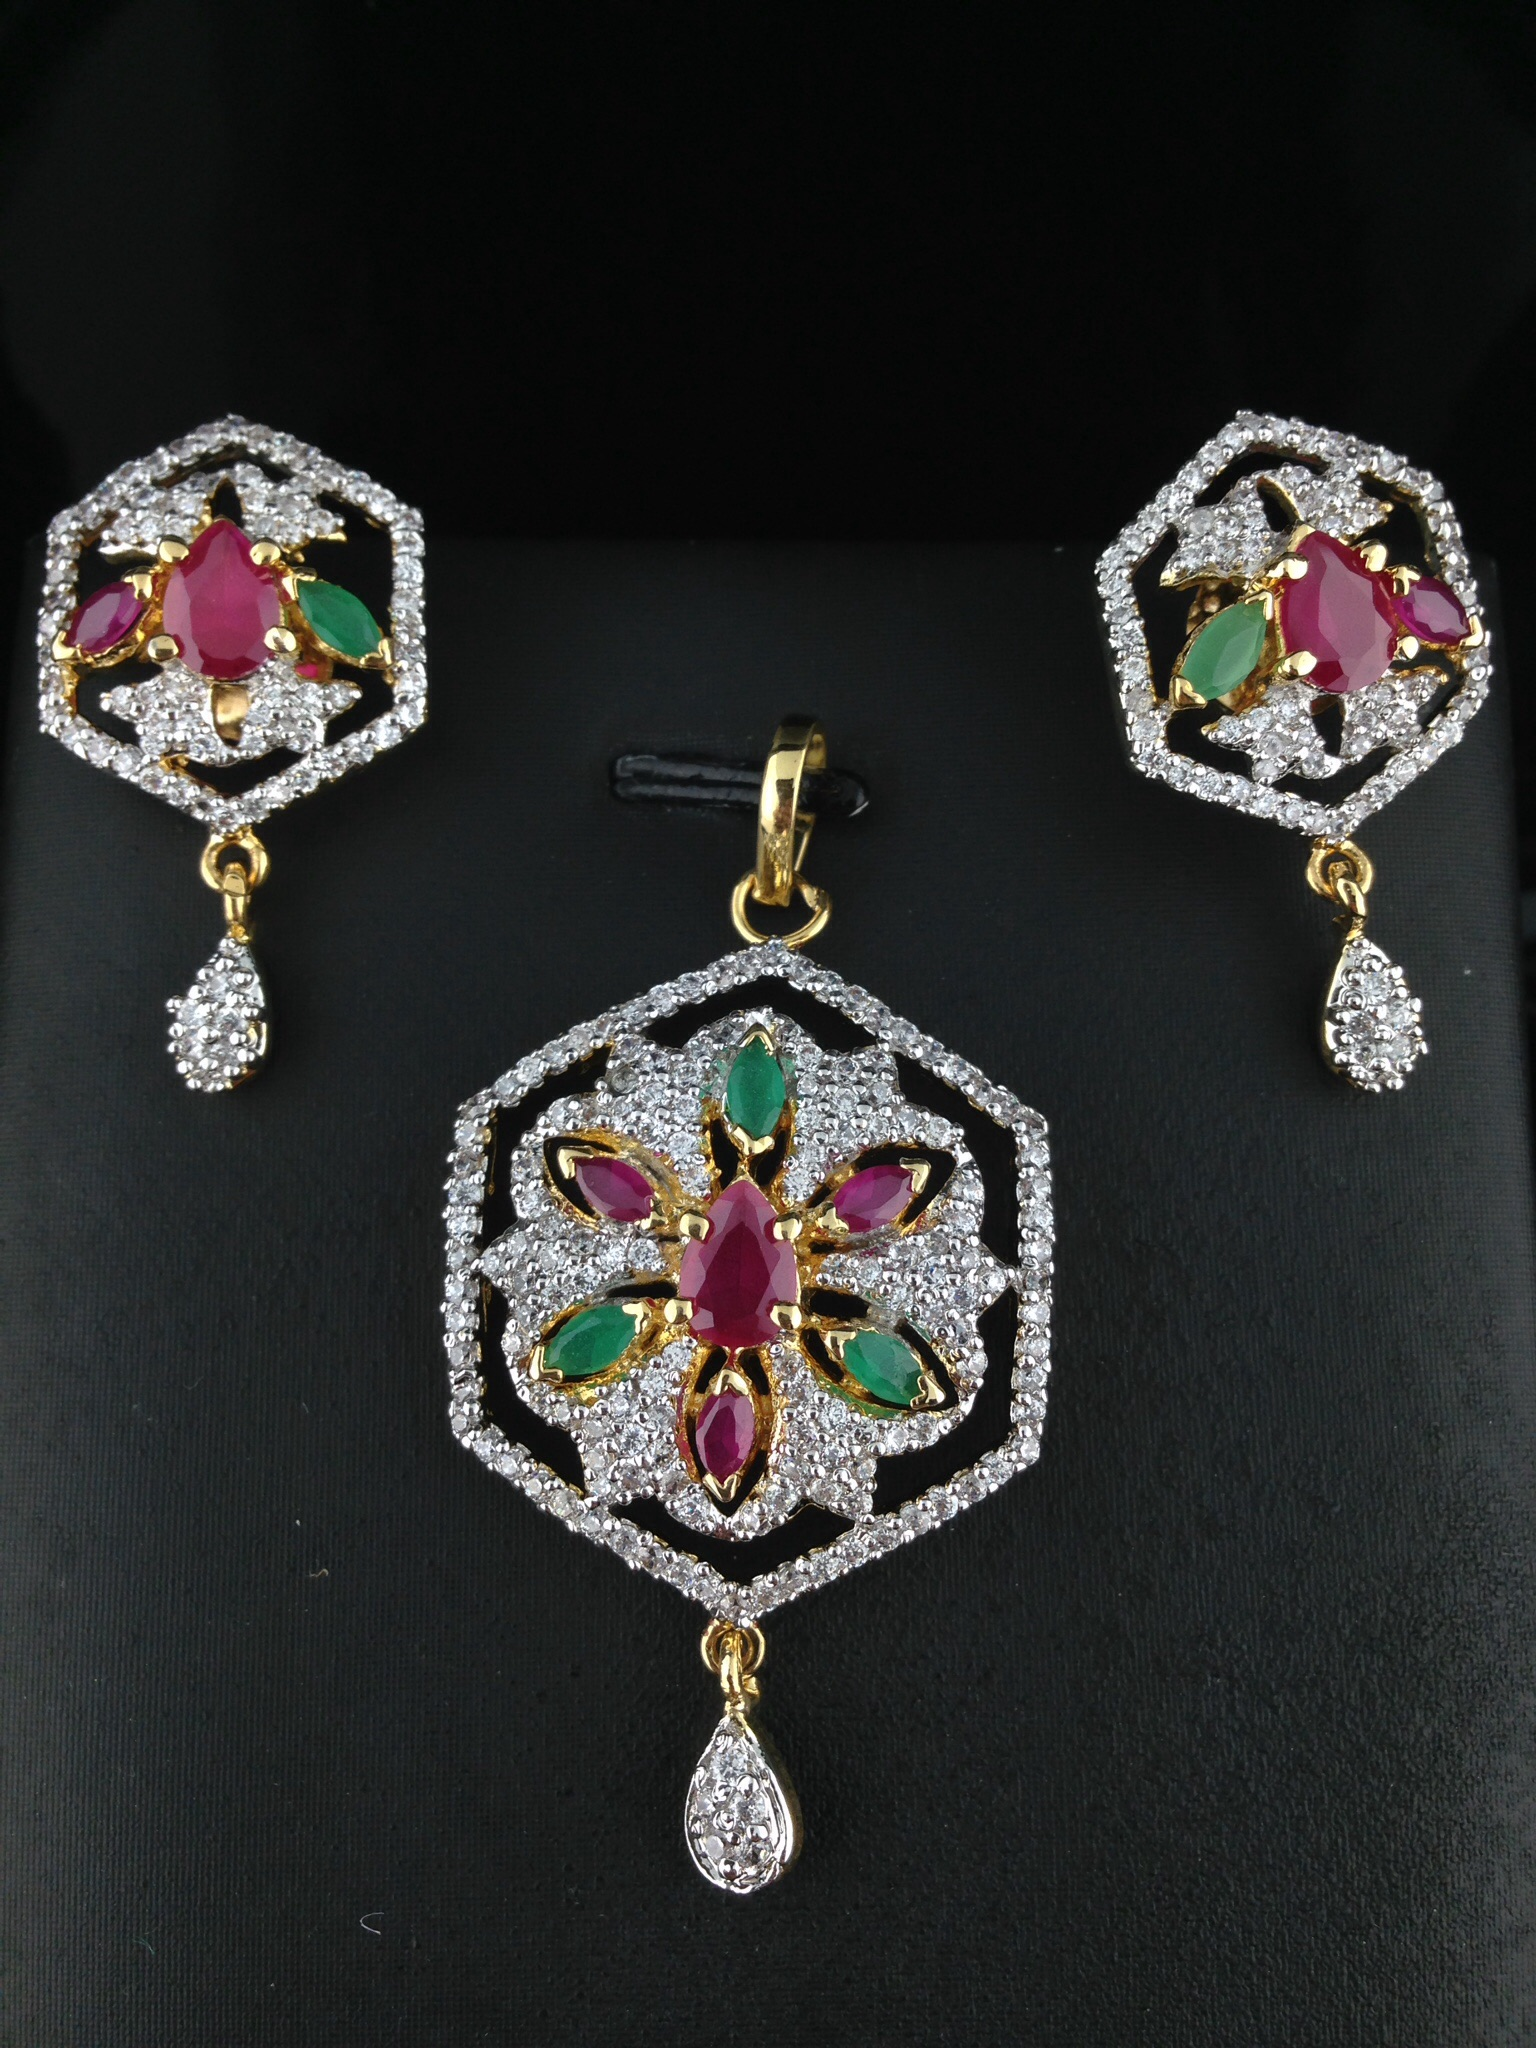 American Diamond CZ Pendant Set With Rubies and Emeralds